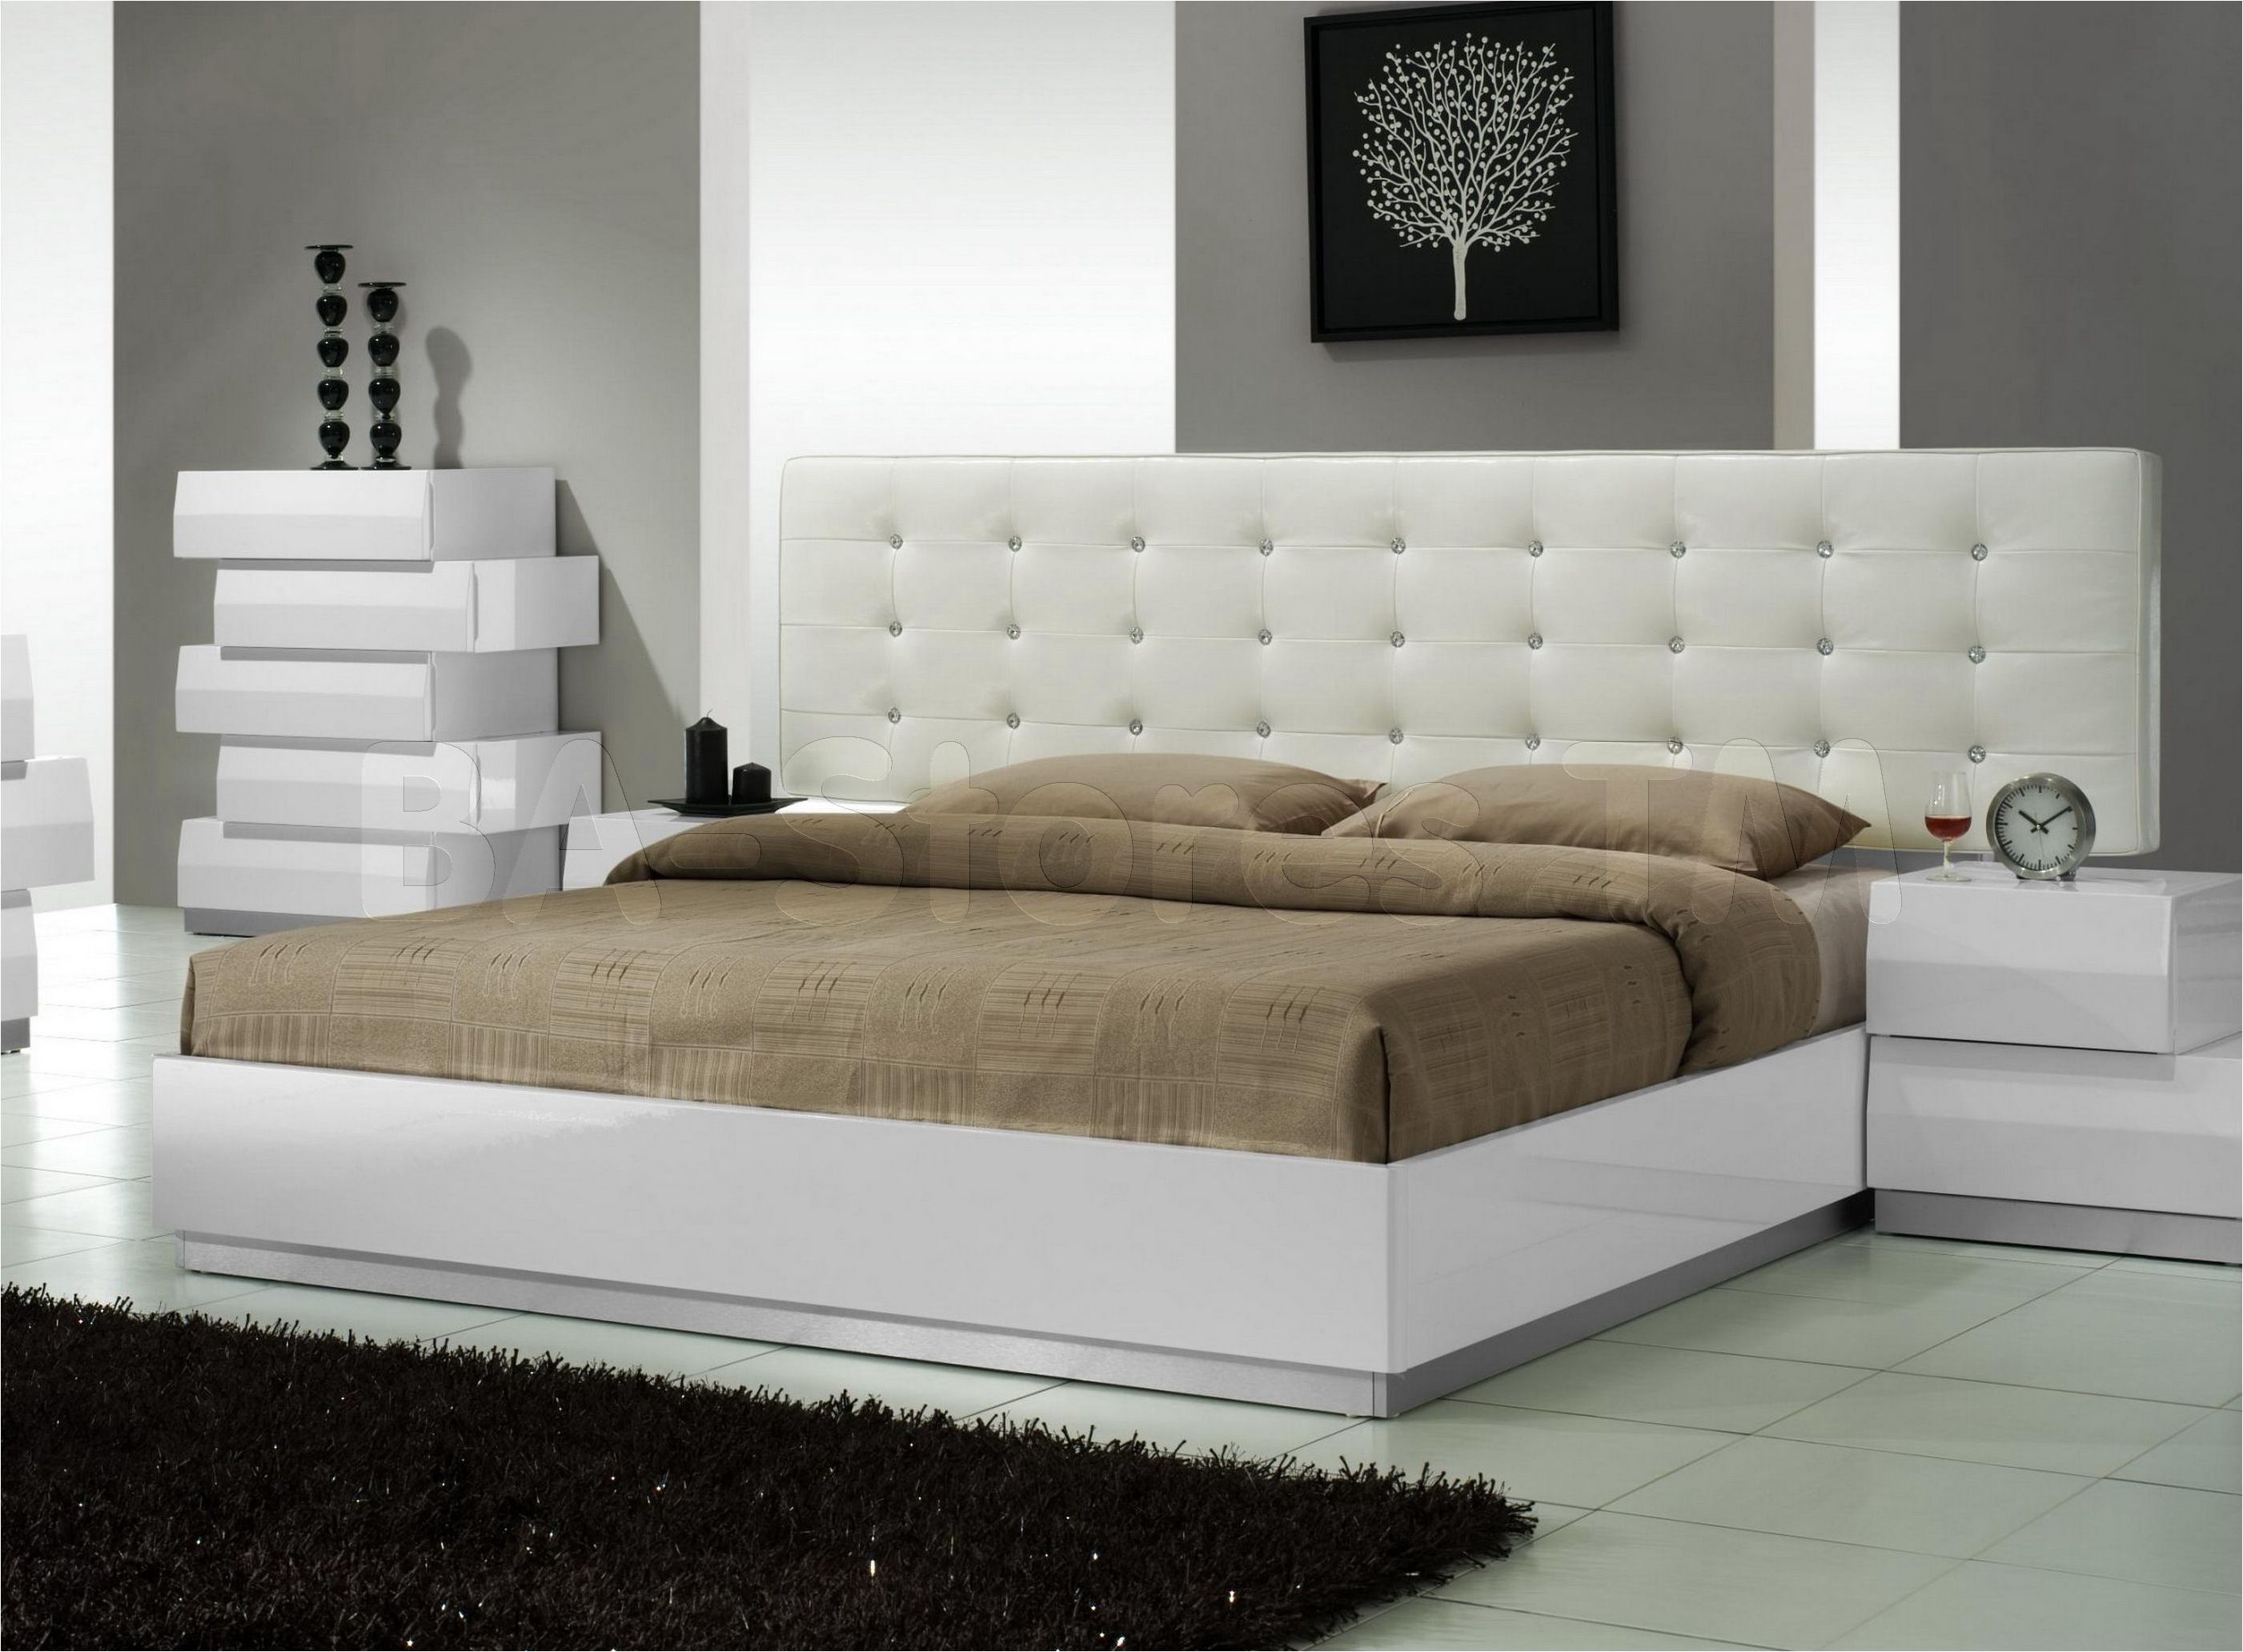 Bedroom furniture remodel and produce the ideal bedroom by having a